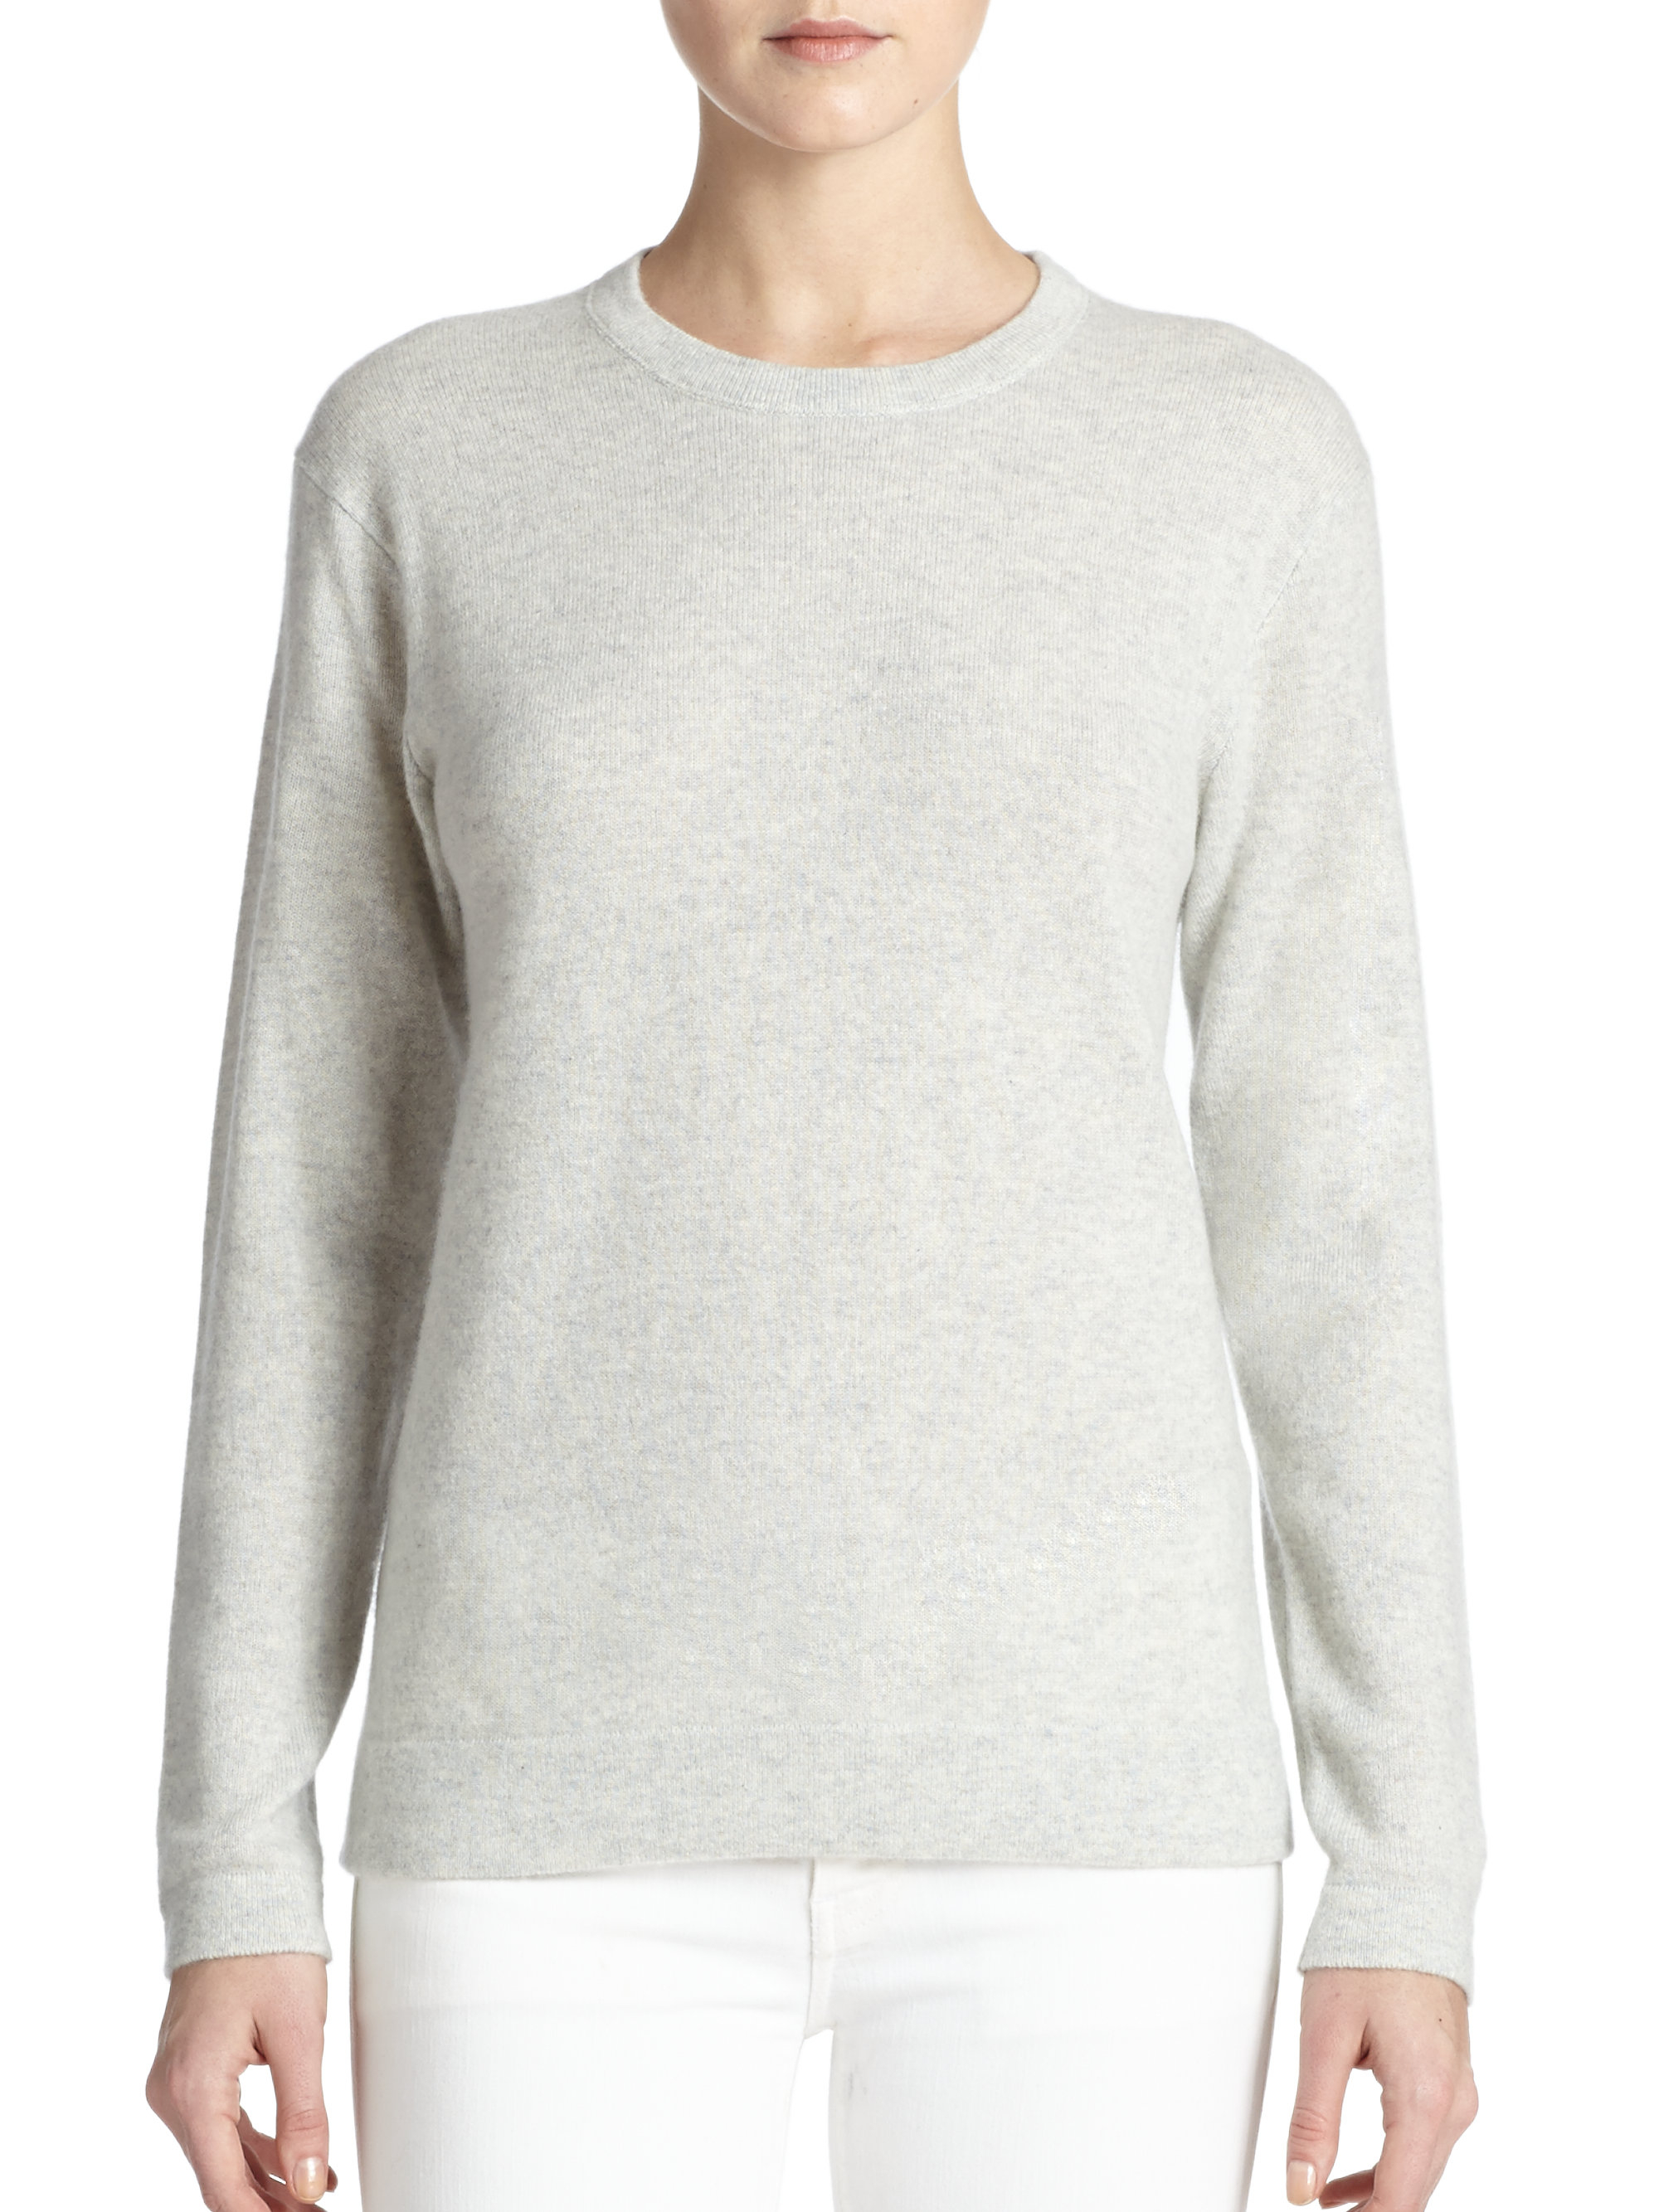 9dedb1b55 Polo Ralph Lauren Cashmere Crewneck Sweater in Gray - Lyst